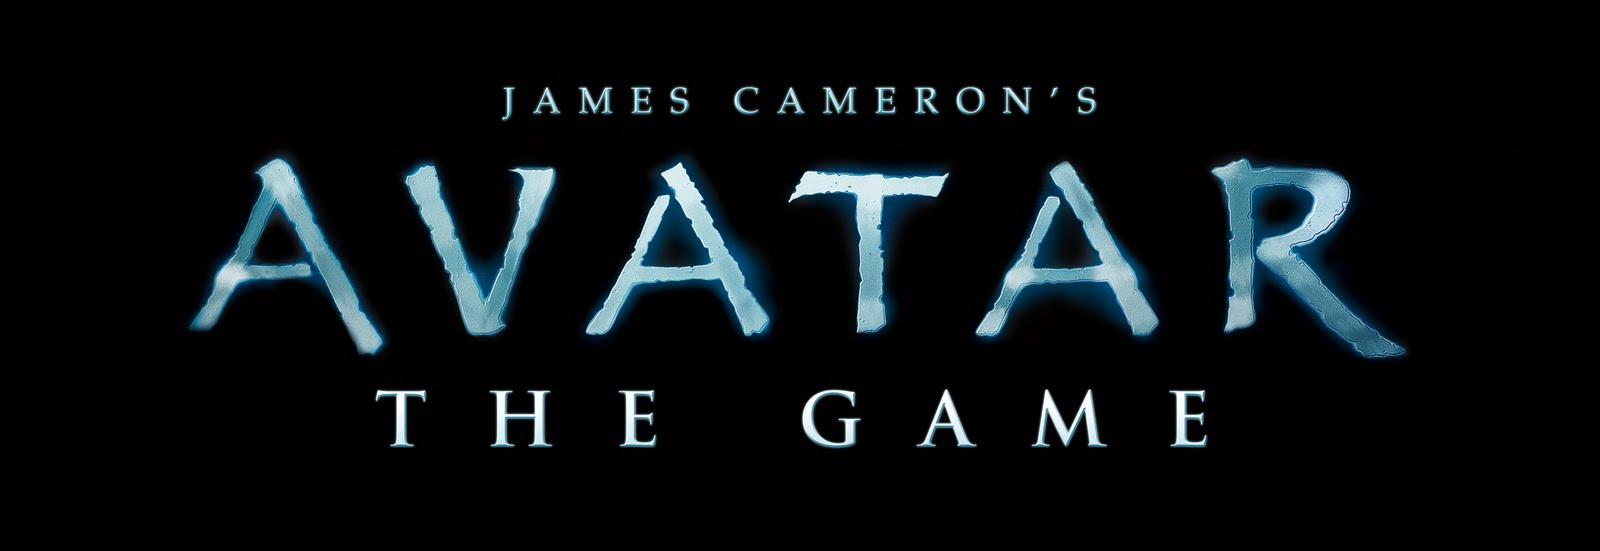 reviews gameattic page  james cameron has never been know for small and massive films like titanic the terminator and alien under his belt it is little wonder that his